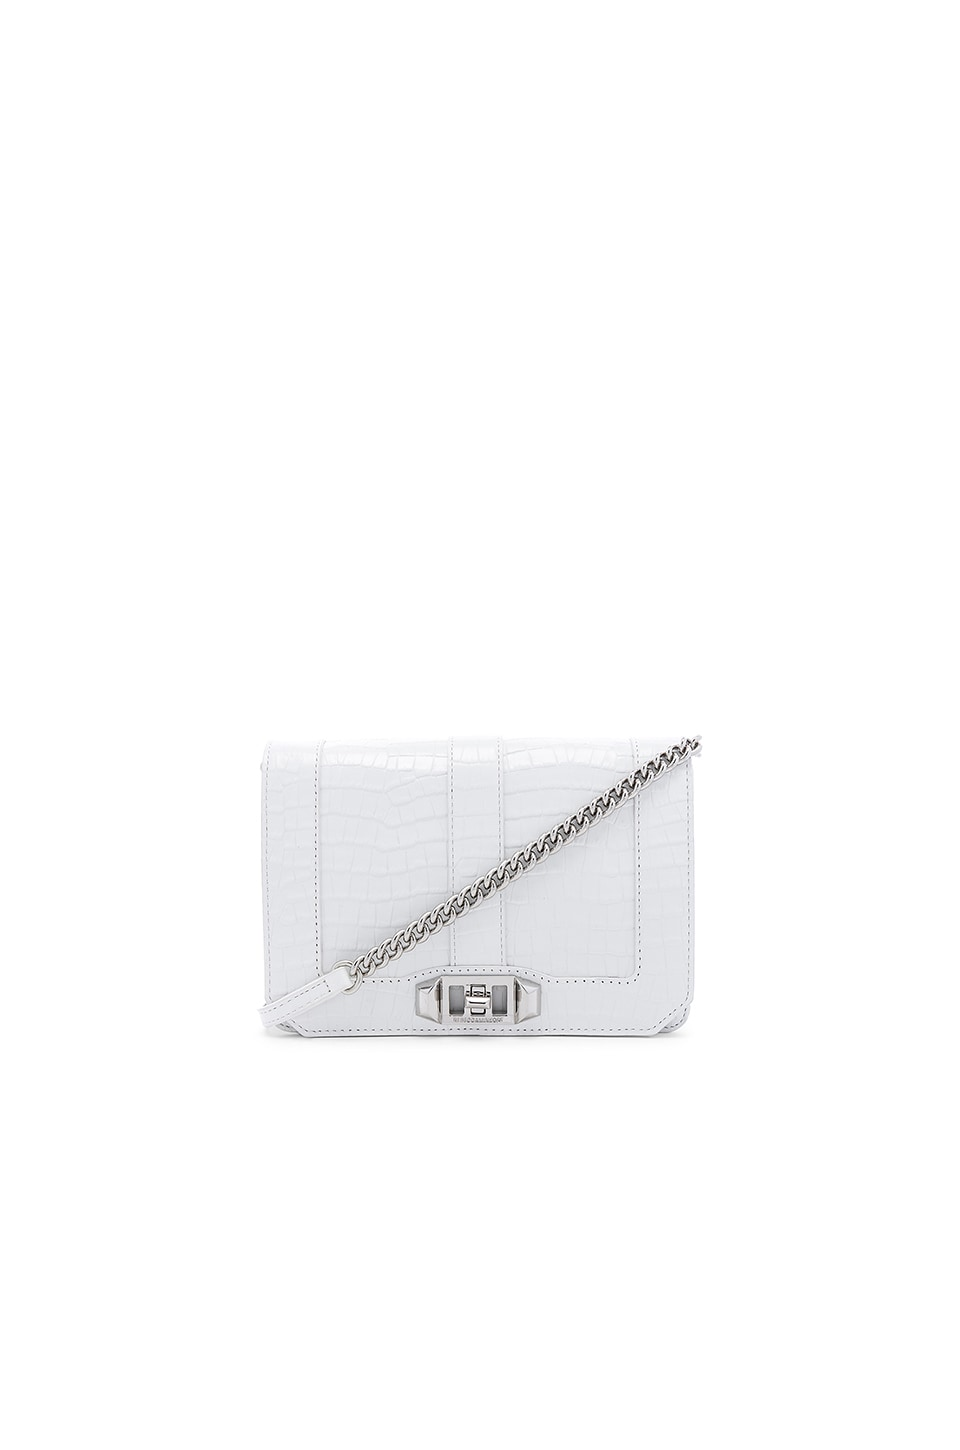 Rebecca Minkoff Croco Small Love Crossbody in Optic White